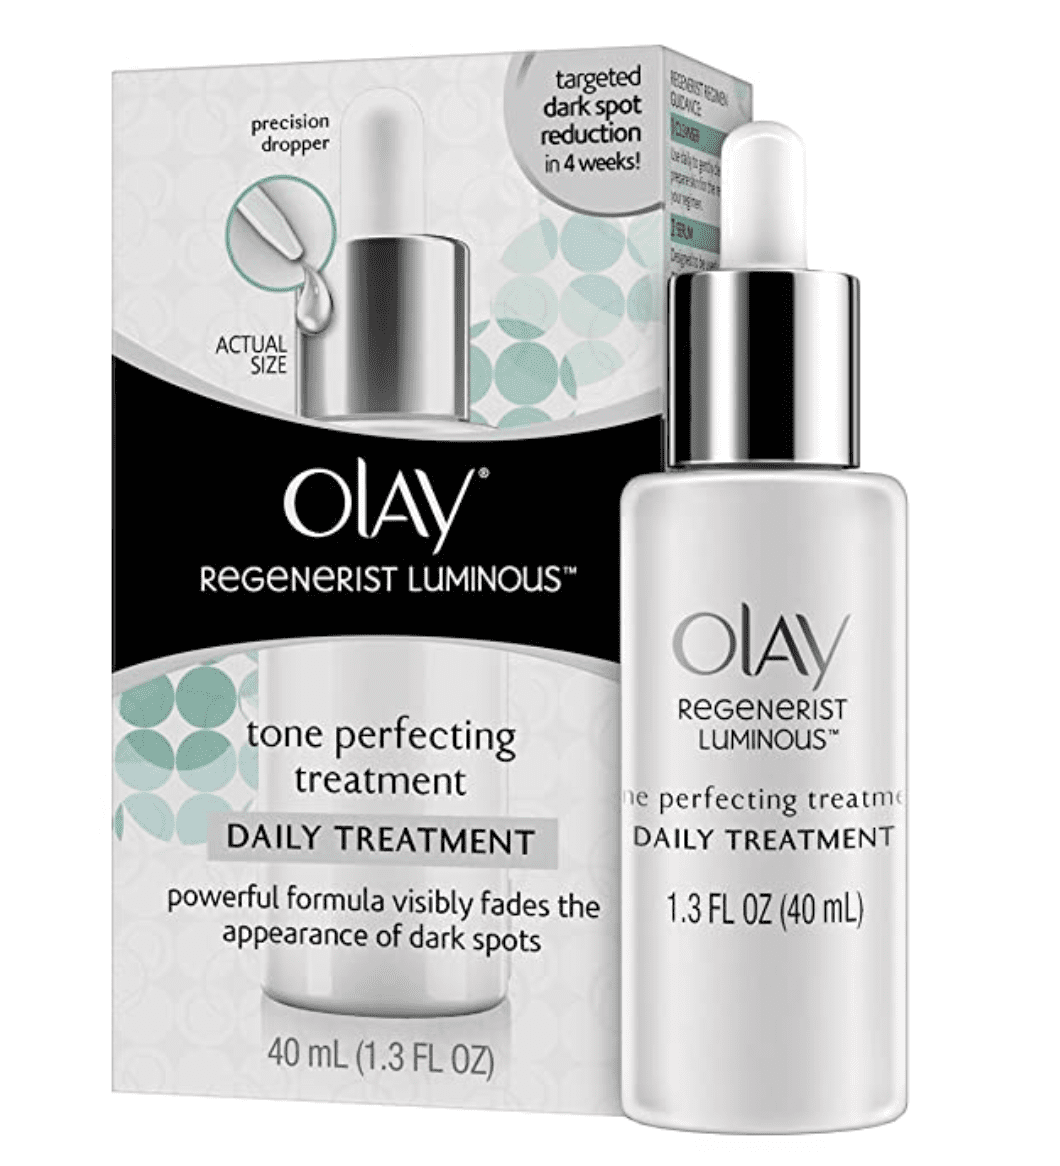 Amazon: Olay Regenerist Tone,1.3 fl oz for .81